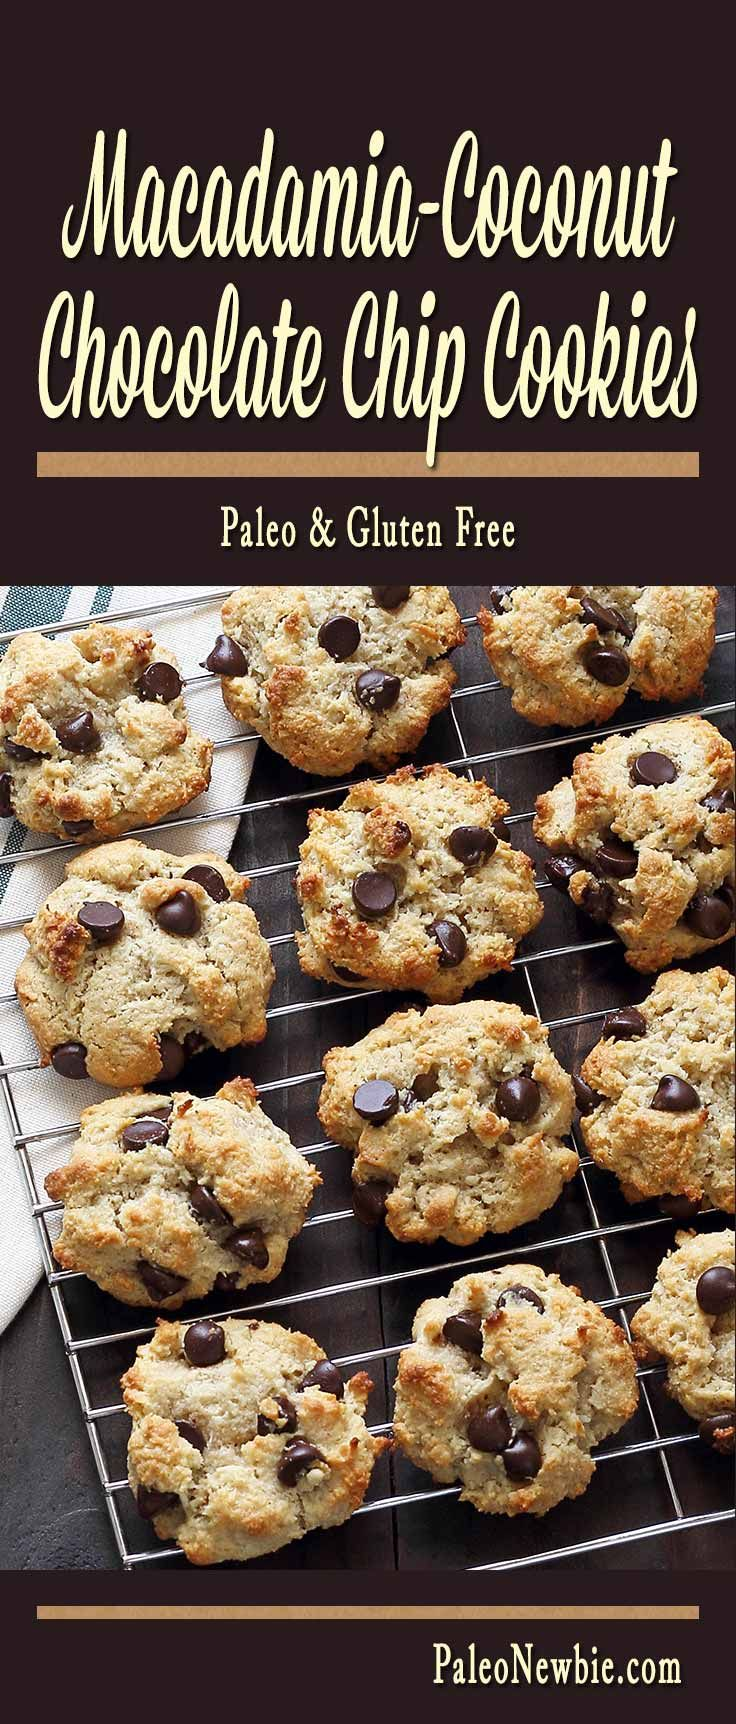 Rich macadamia nut butter taste with shredded coconut and dark chocolate chips. Not oily, crumbly or over-sweet – close to the perfect paleo cookie in my book! Try these!